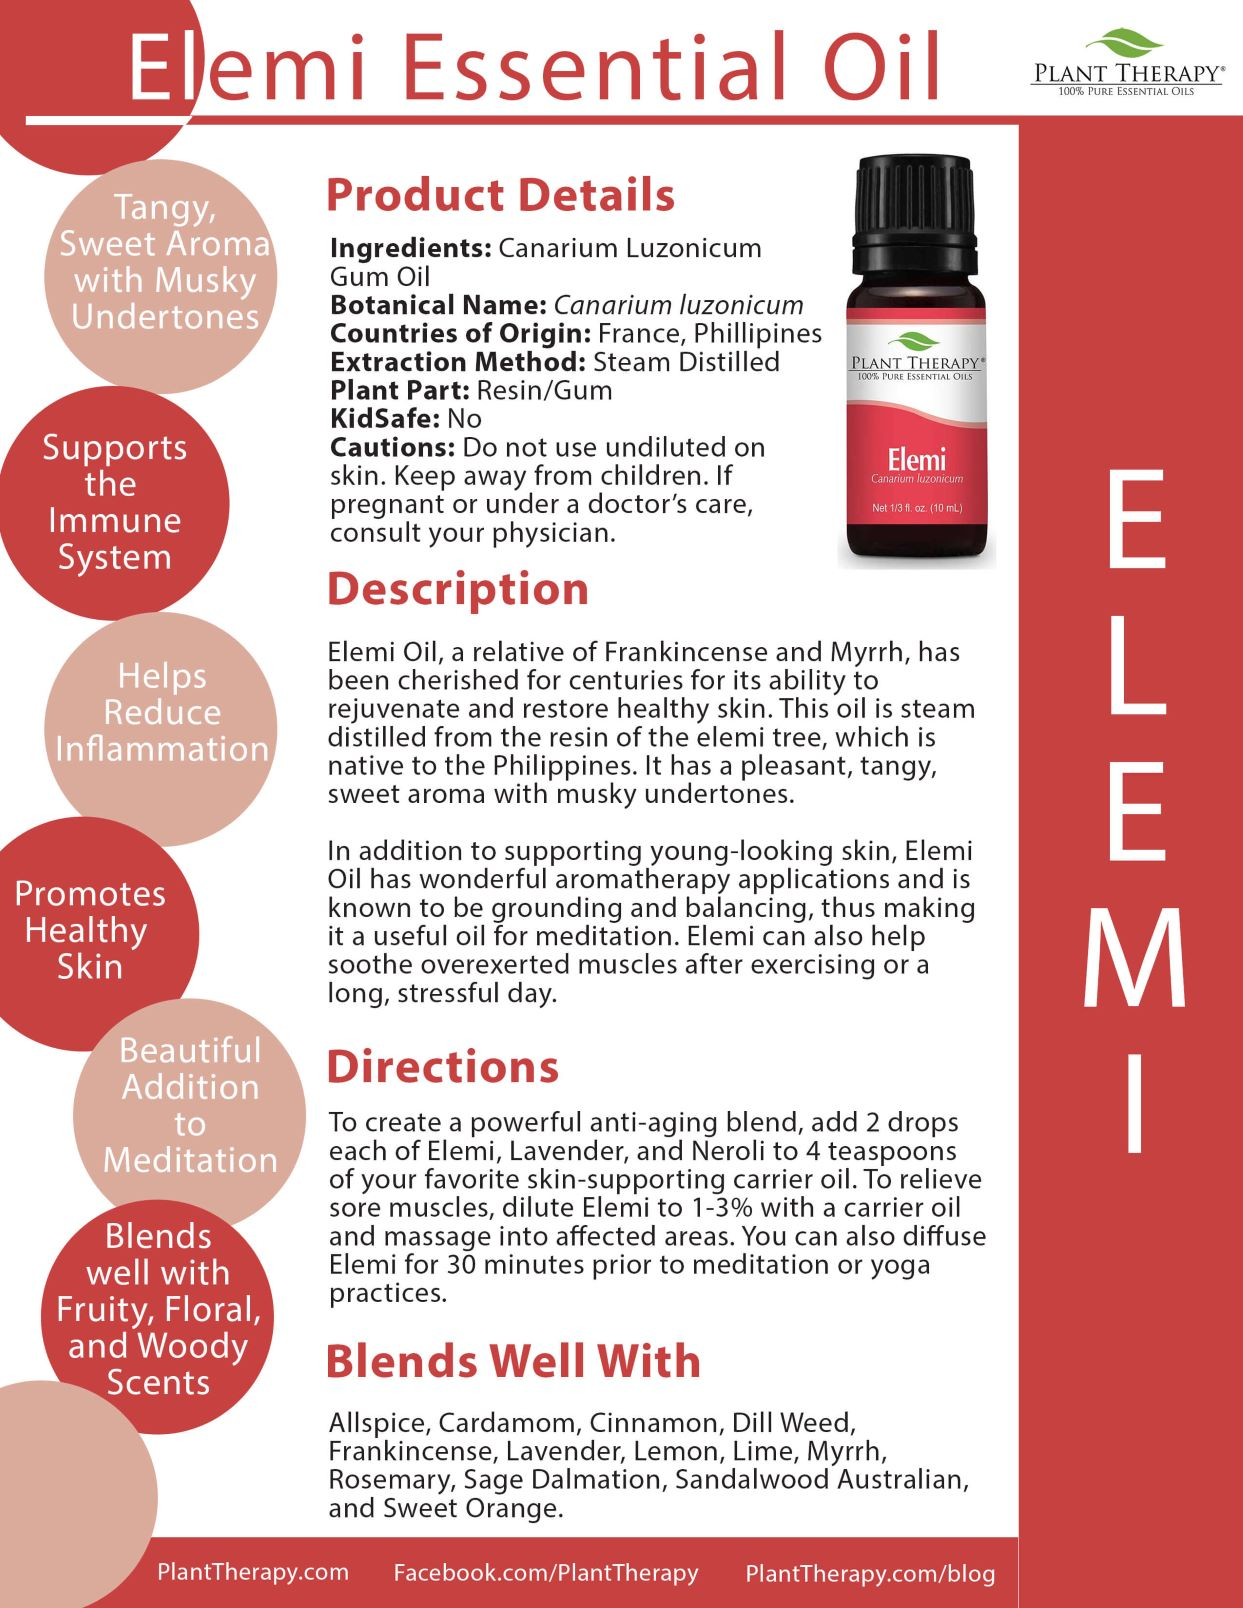 Elemi Essential Oil Plant Therapy